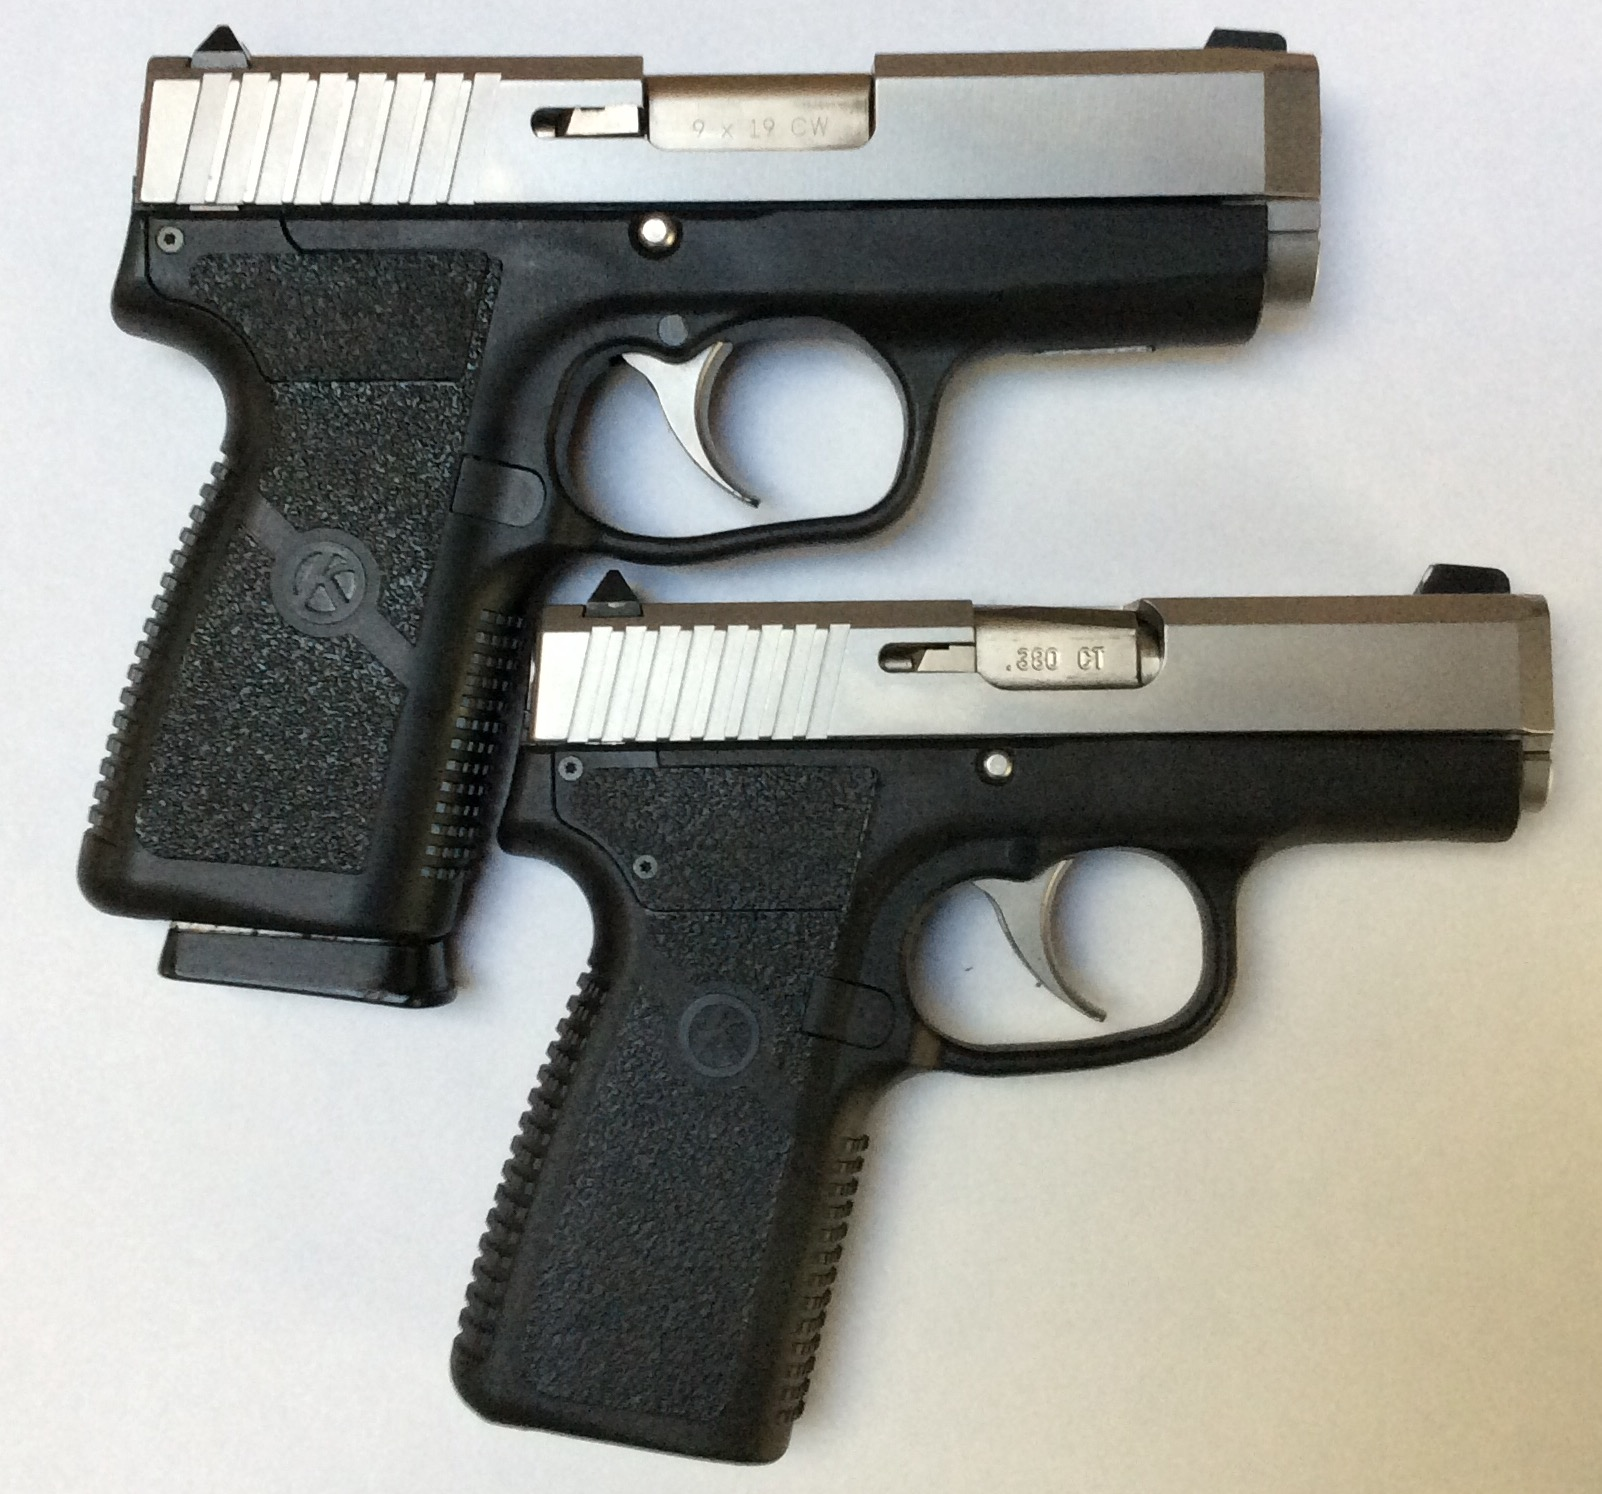 CW9 Compared with Kahr CT380